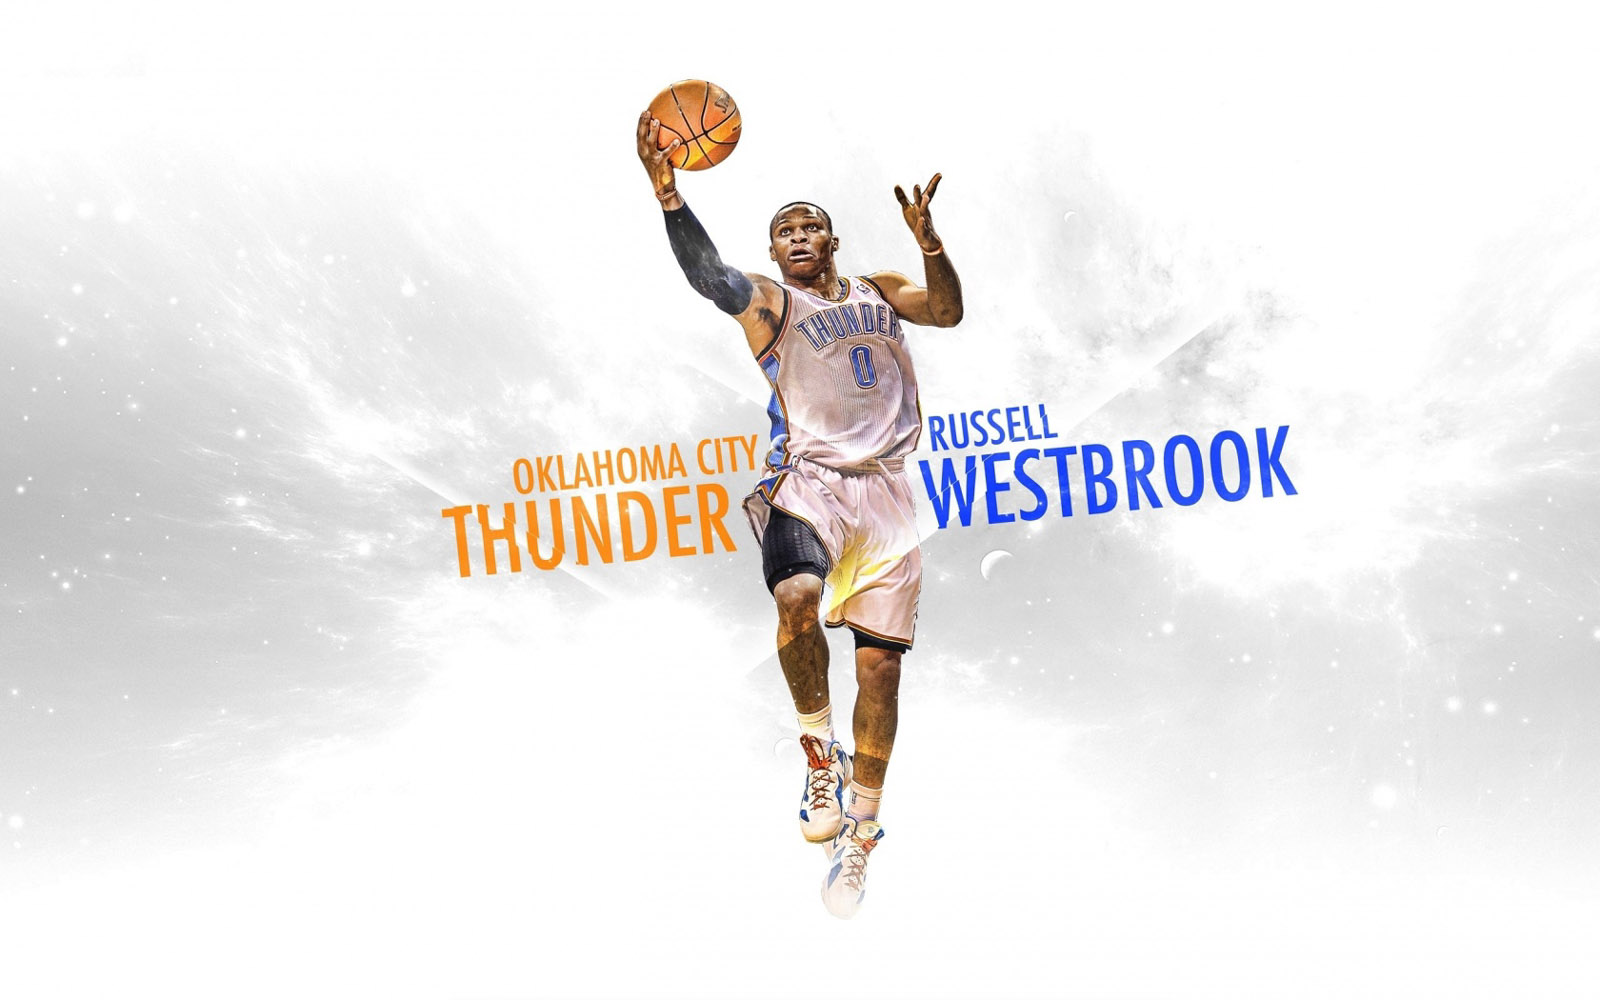 Russell Westbrook Biography - NBA player for the Oklahoma City Thunder